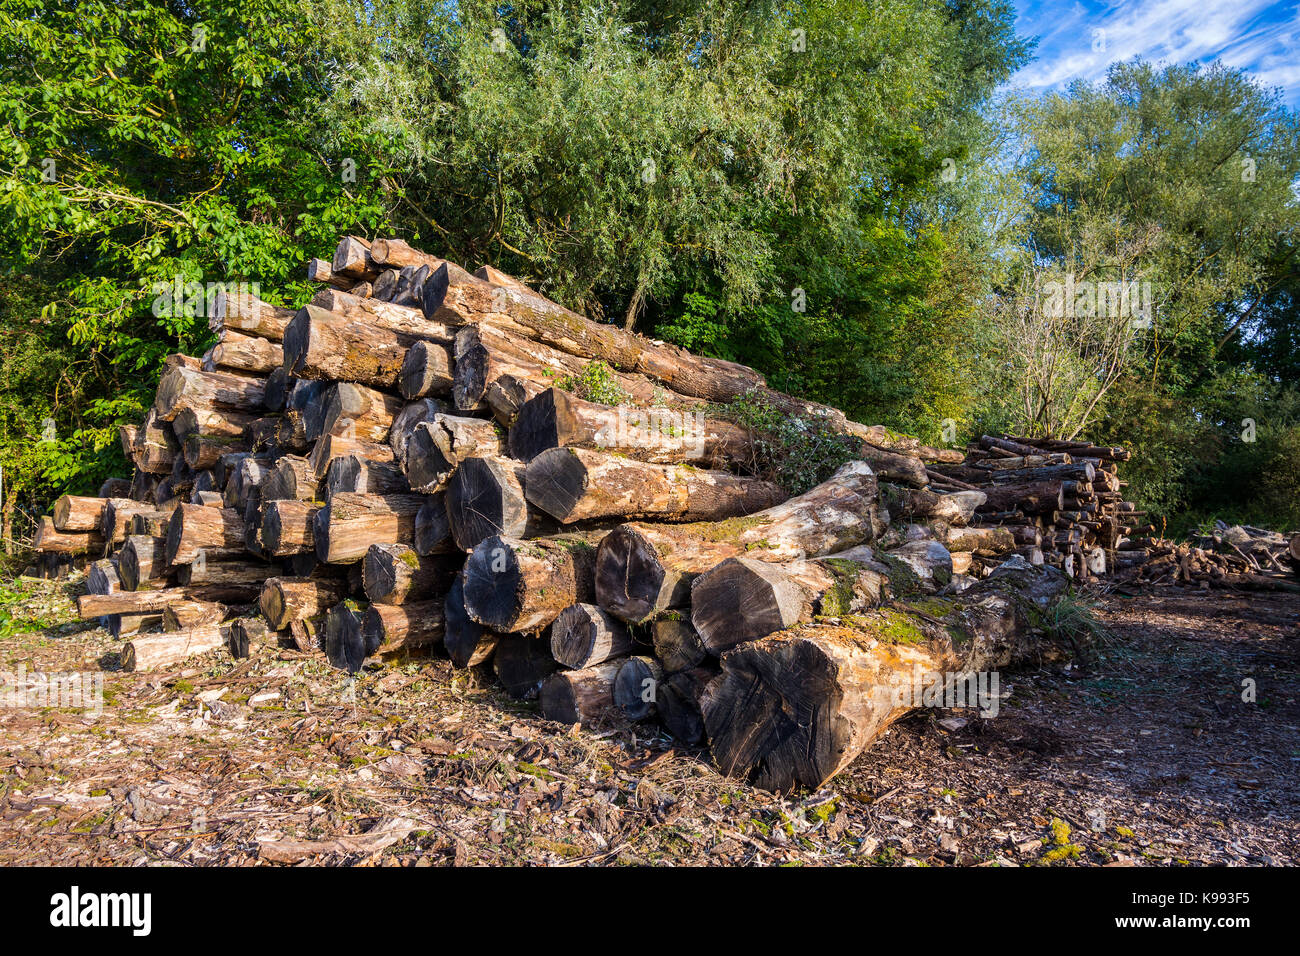 Stack of tree trunks. - Stock Image